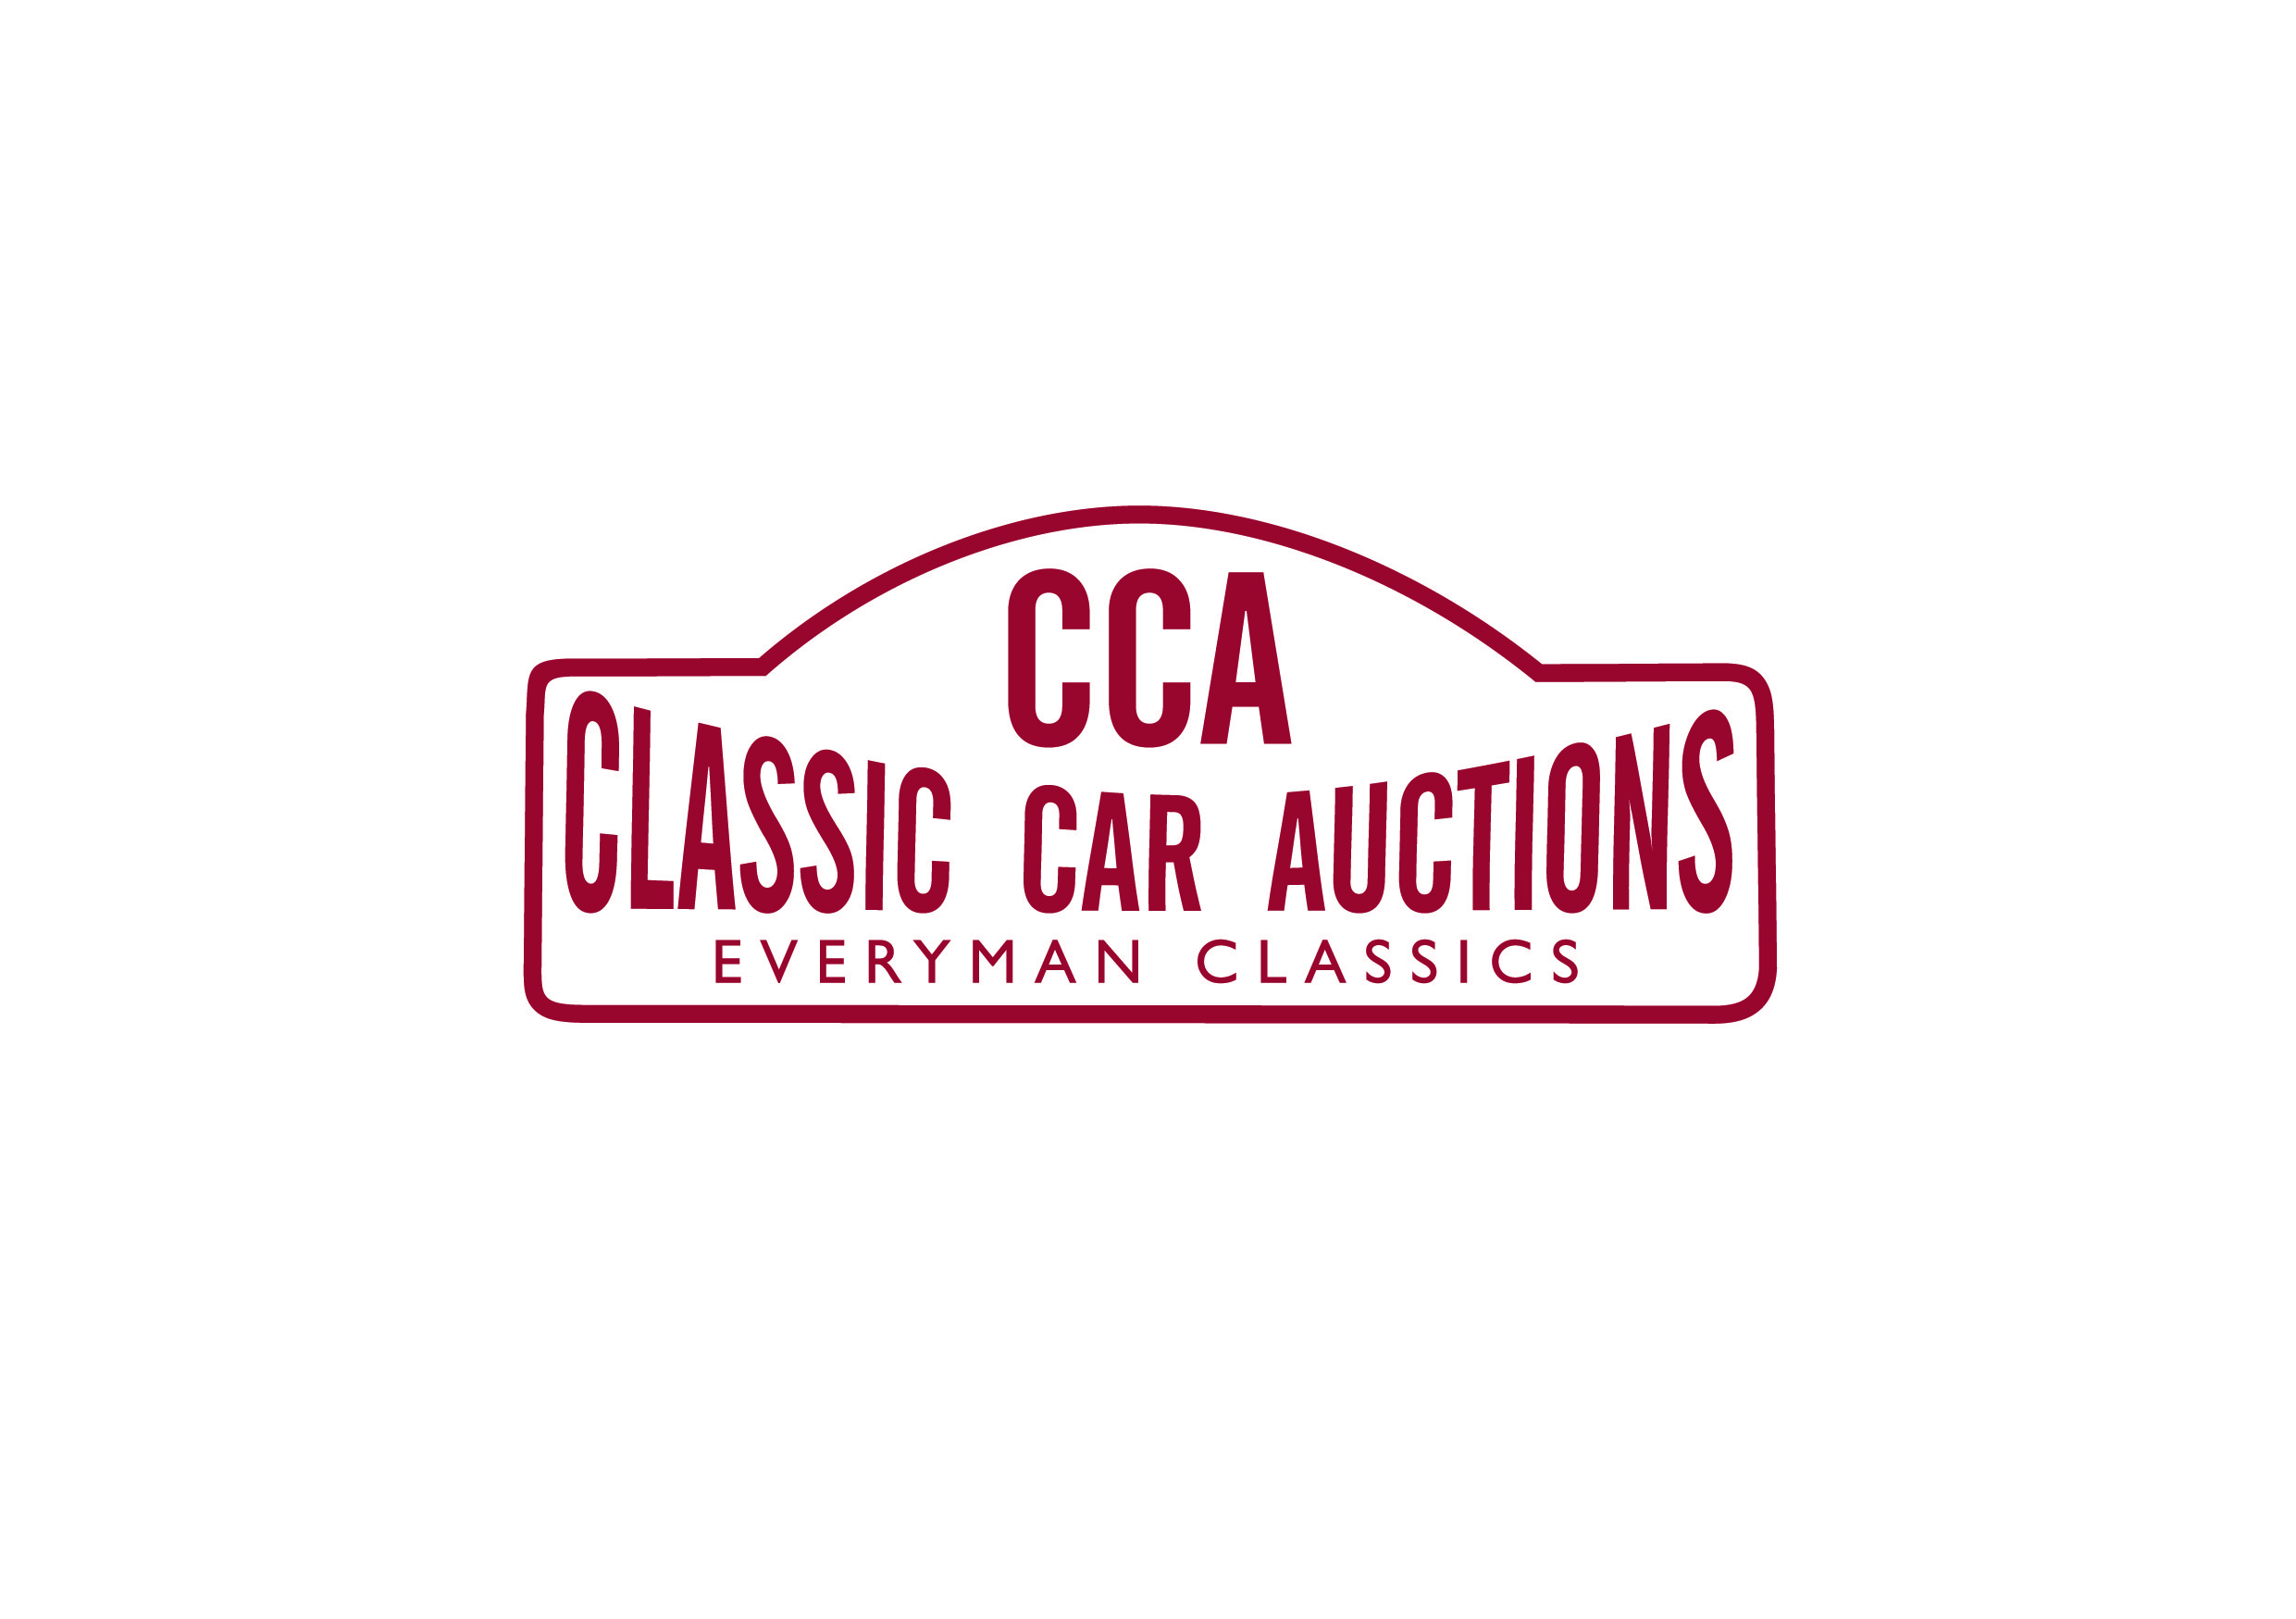 Classic Car Auctions Ltd.